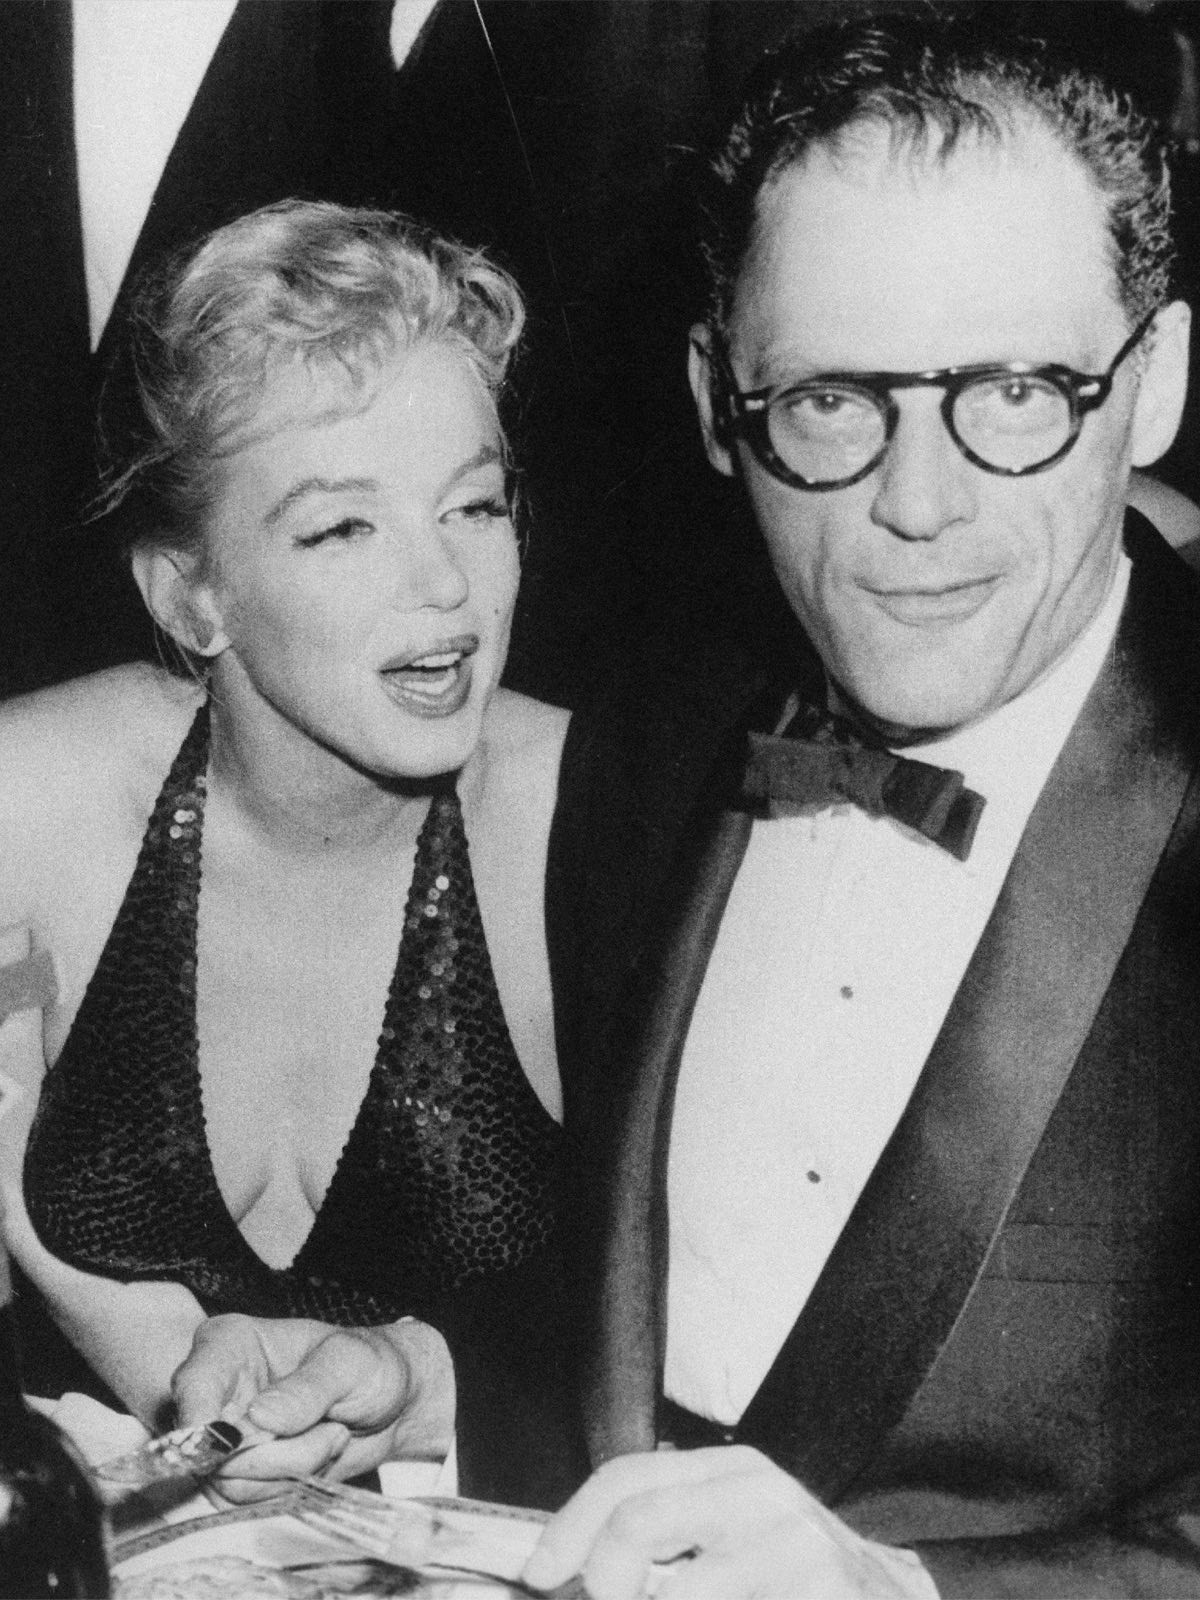 Monroe attempted suicide whilst married to playwright Arthur Miller